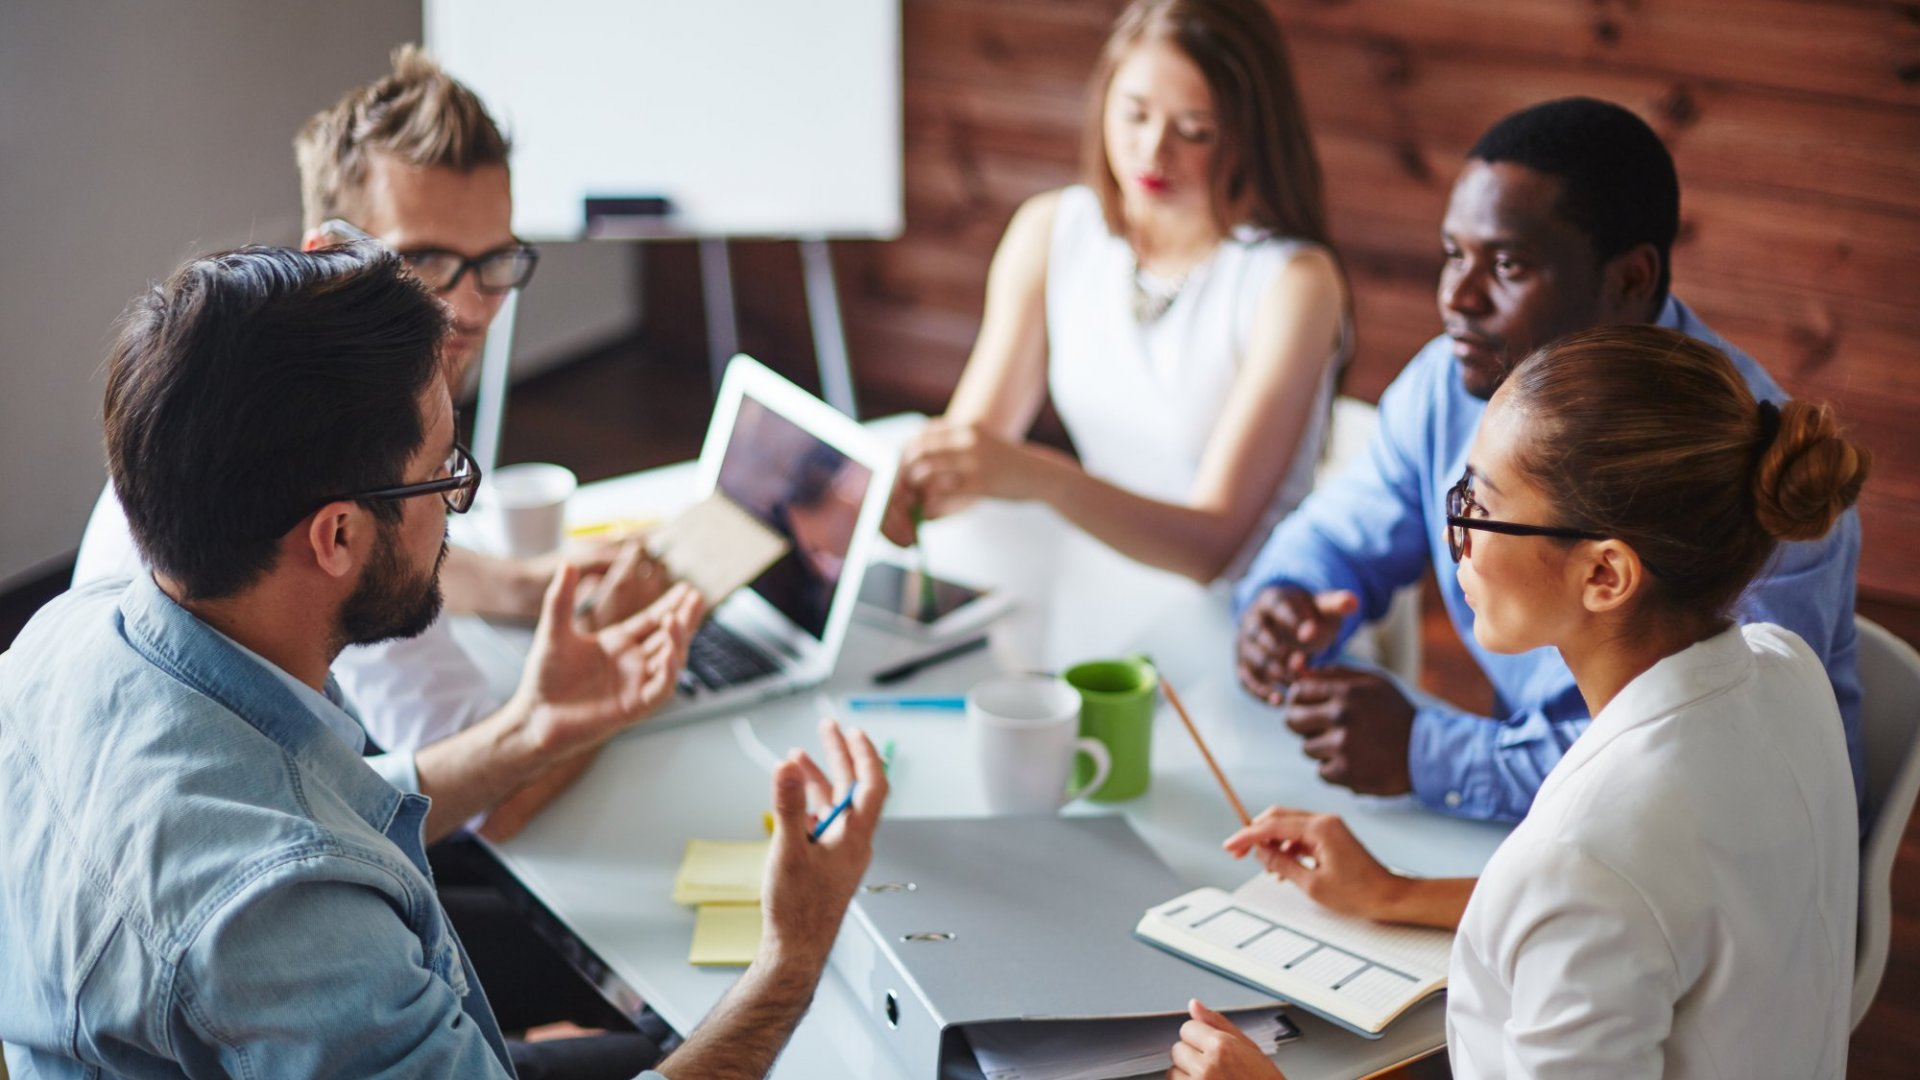 Want to Get Out of Your Next Meeting? Try These 4 Tips